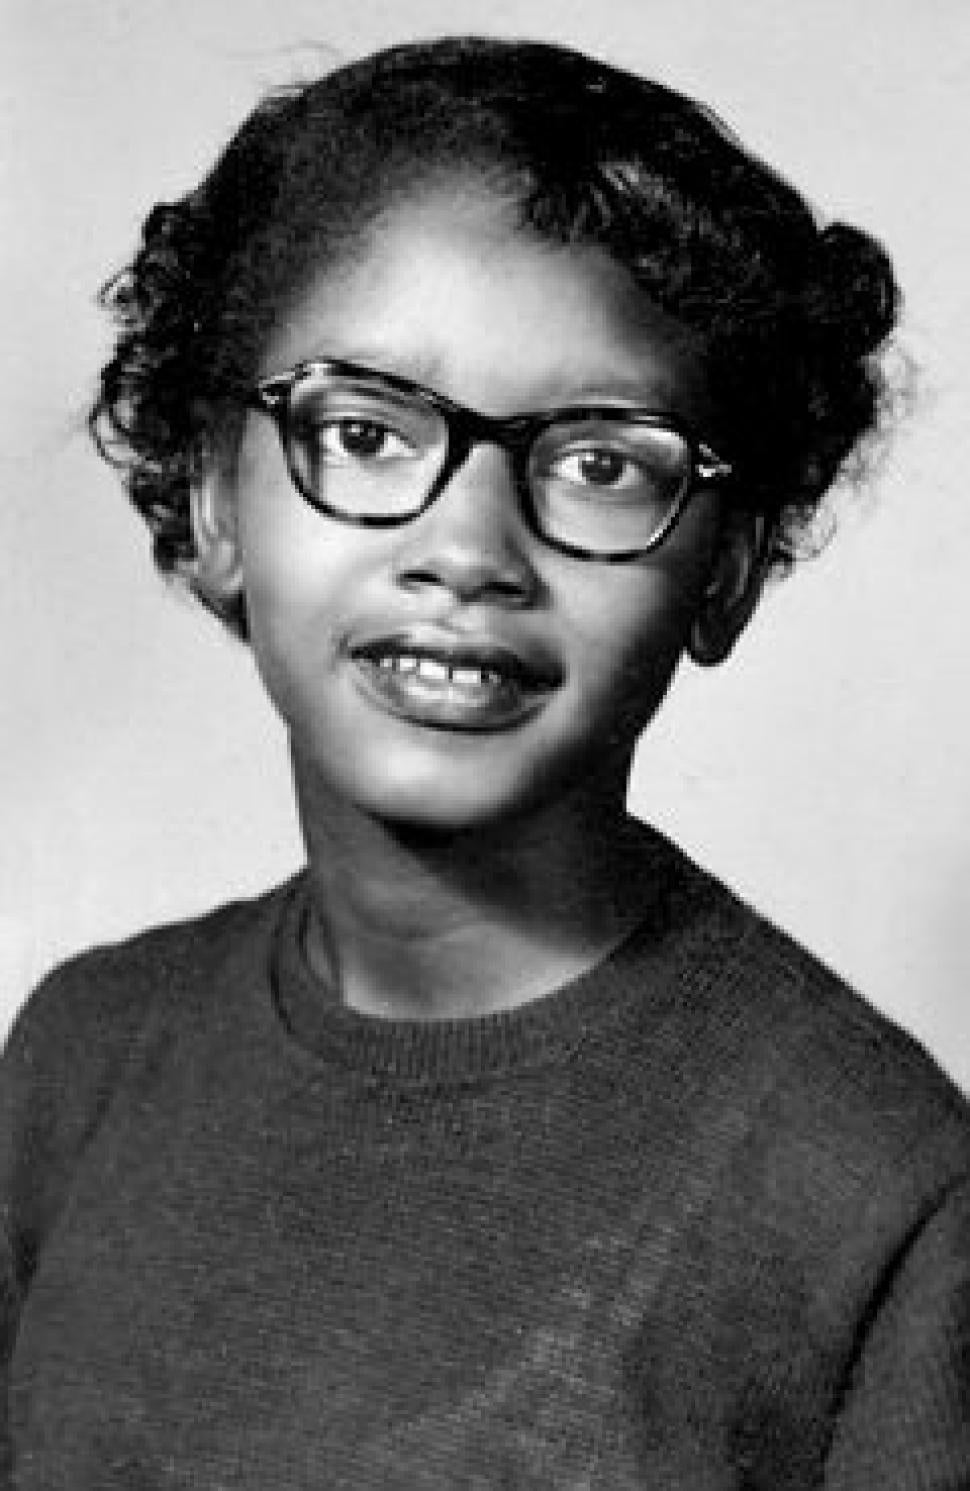 A black and white photograph of Claudette Colvin smiling